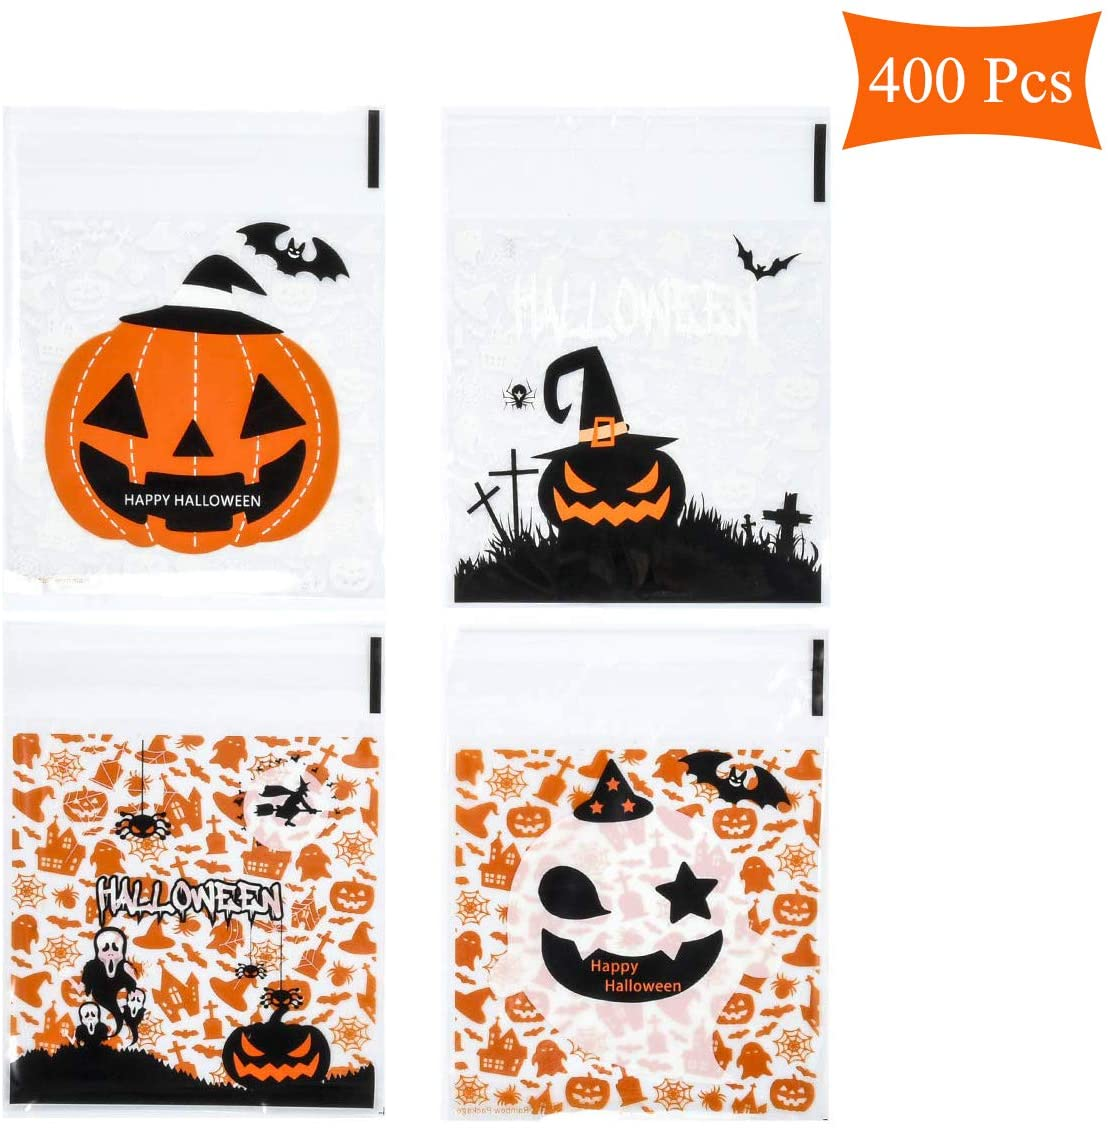 Beautyflier 400 Pcs Self Adhesive Halloween Candy Cookie Bags 4 Different Style Cellophane Treat Bags for Homemade Crafts Bakery Biscuit Chocolate Snacks Dessert Party